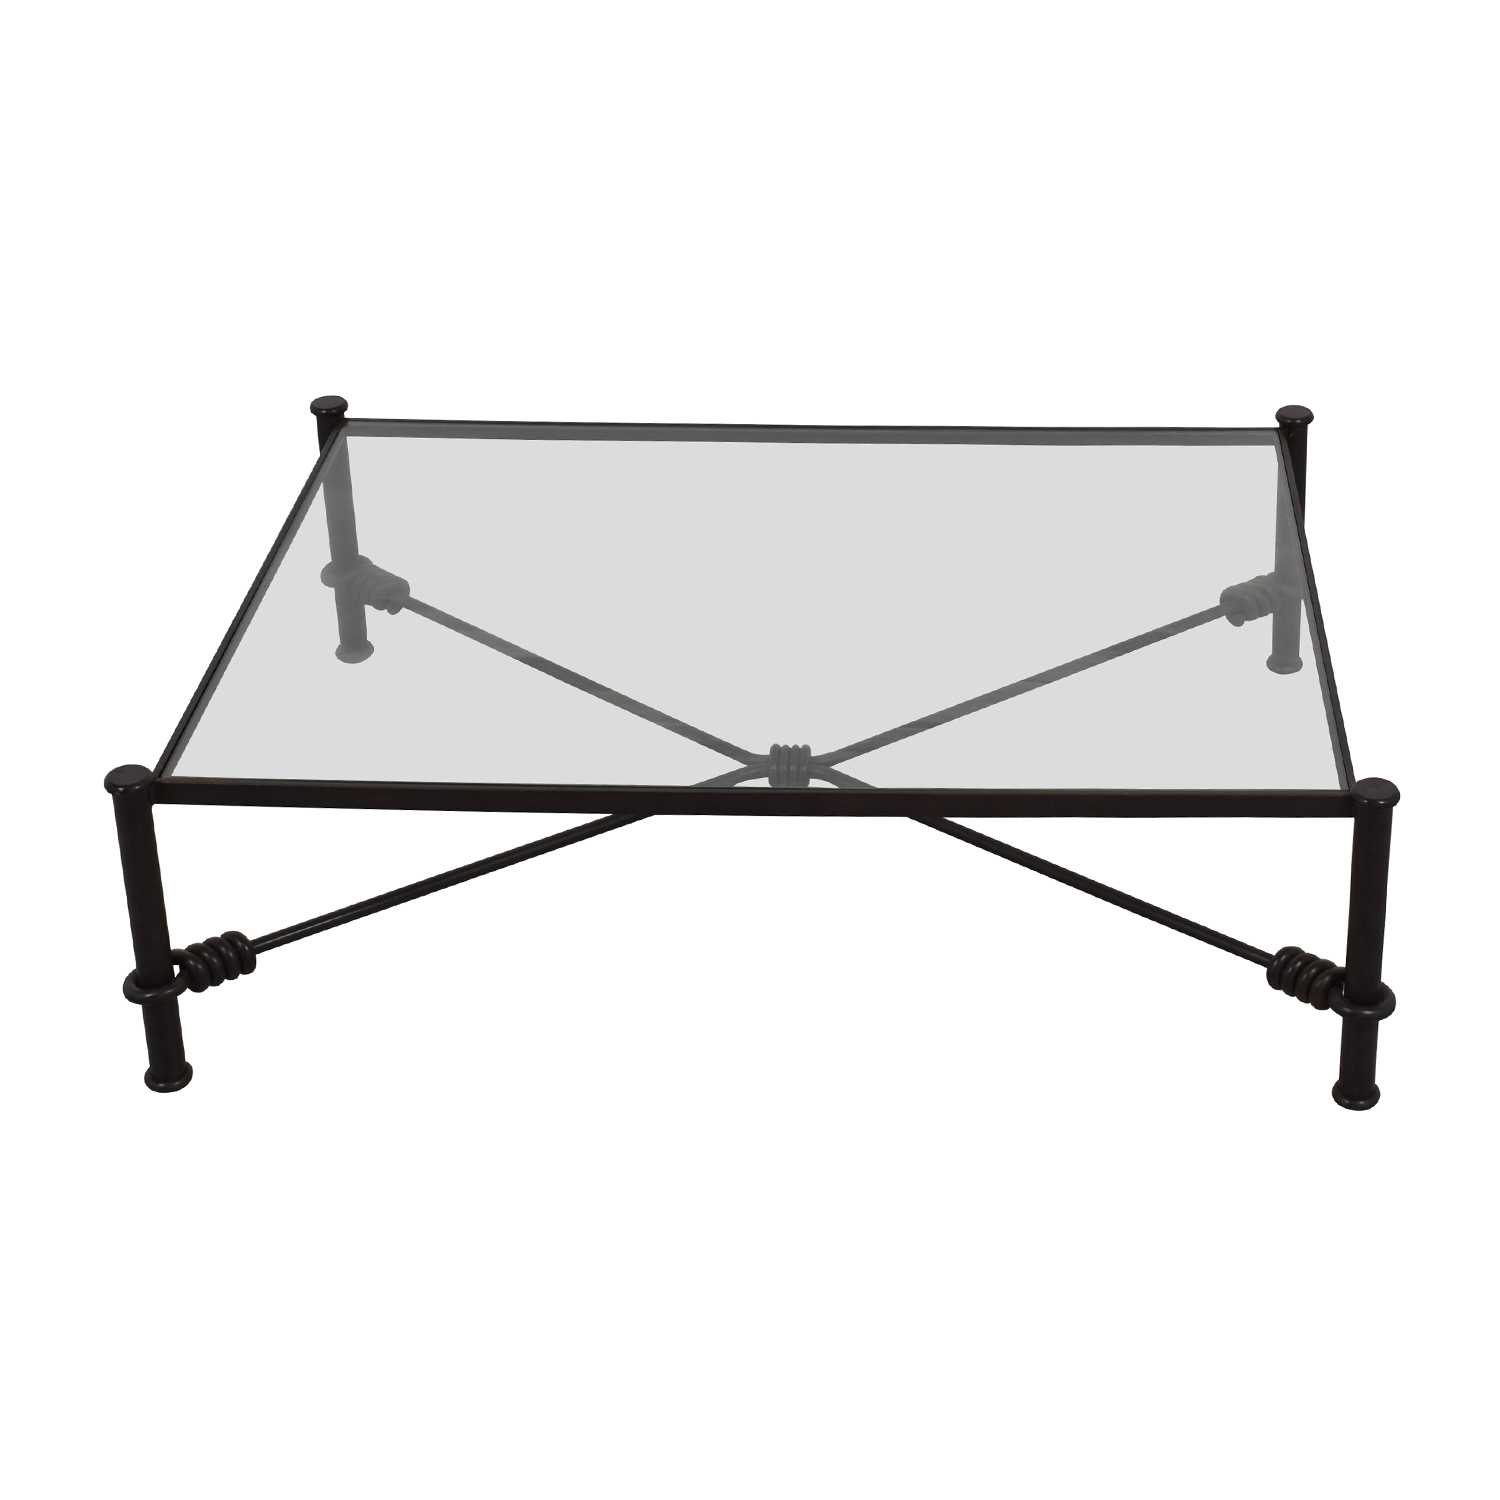 shop Black Wrought Iron Glass Coffee Table online